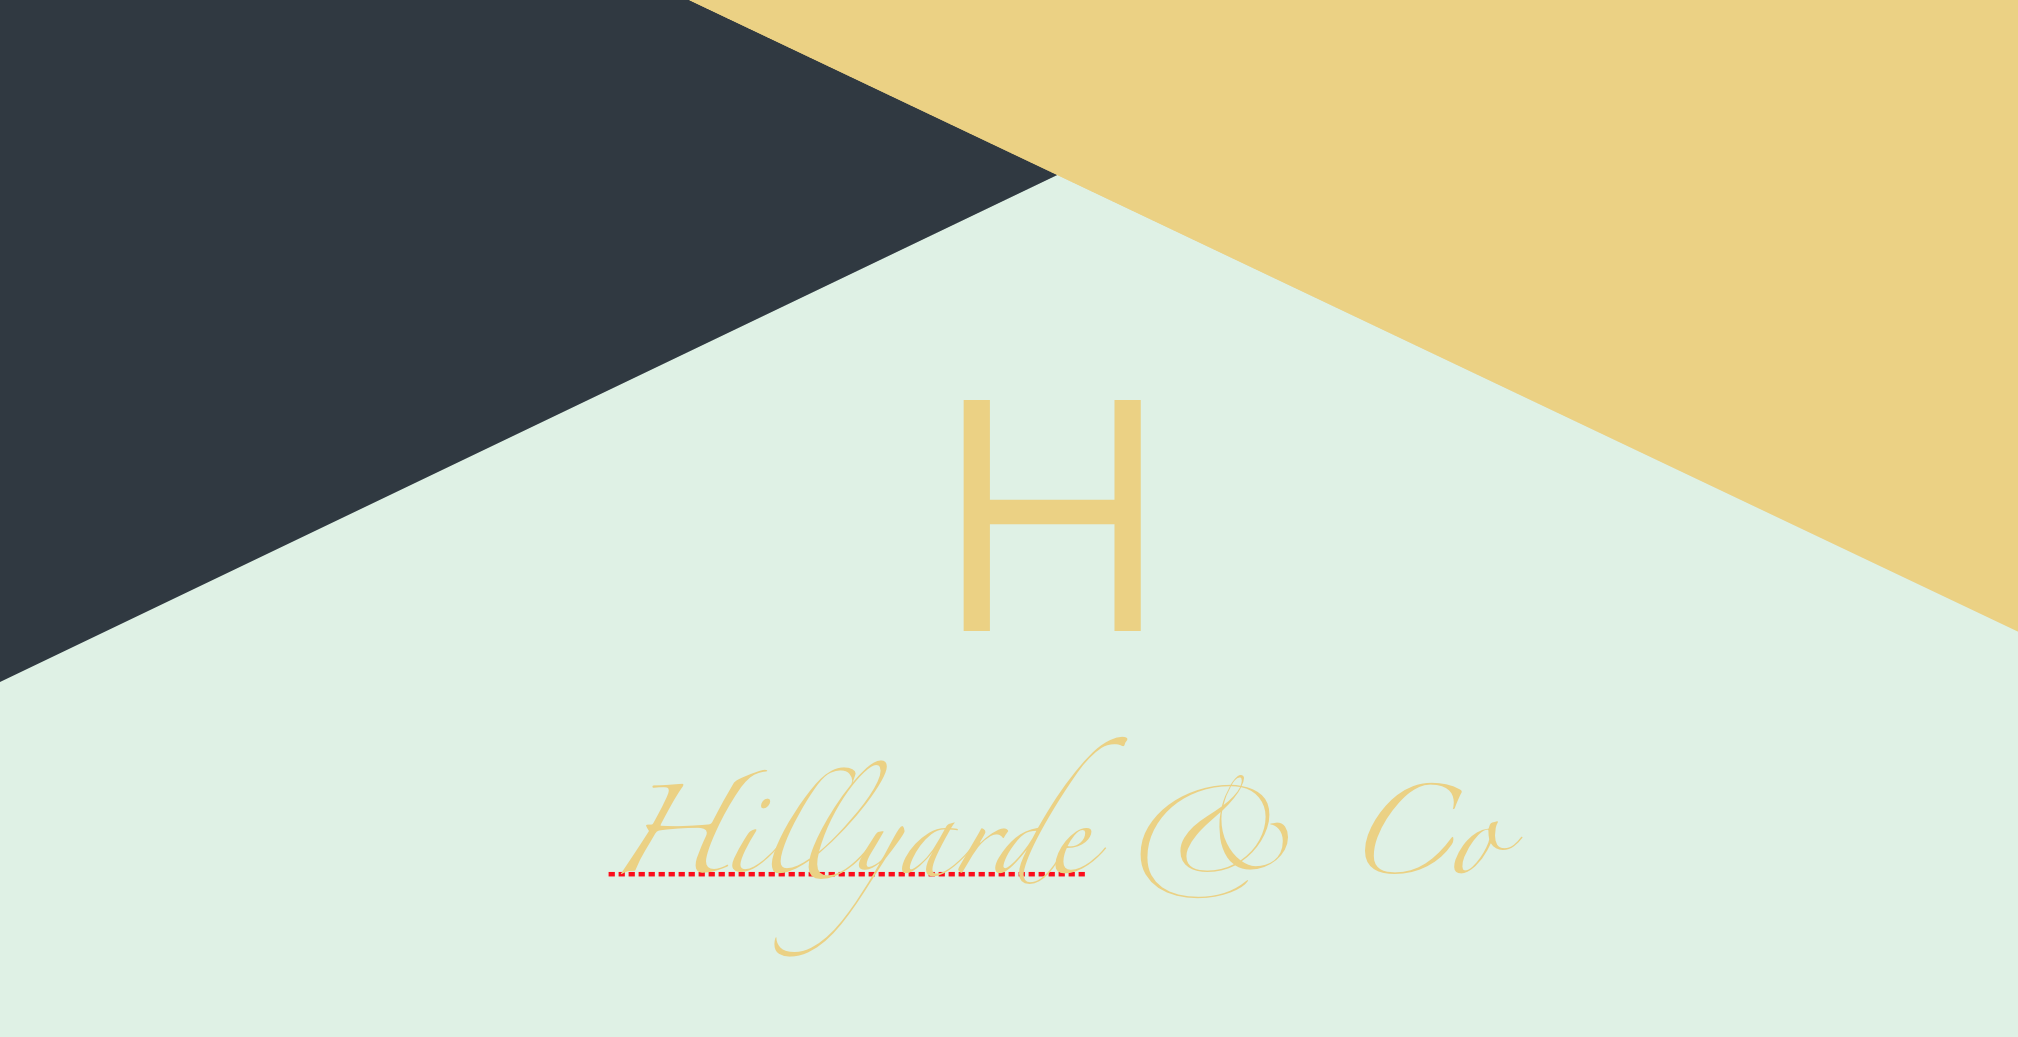 Hillyarde and Co